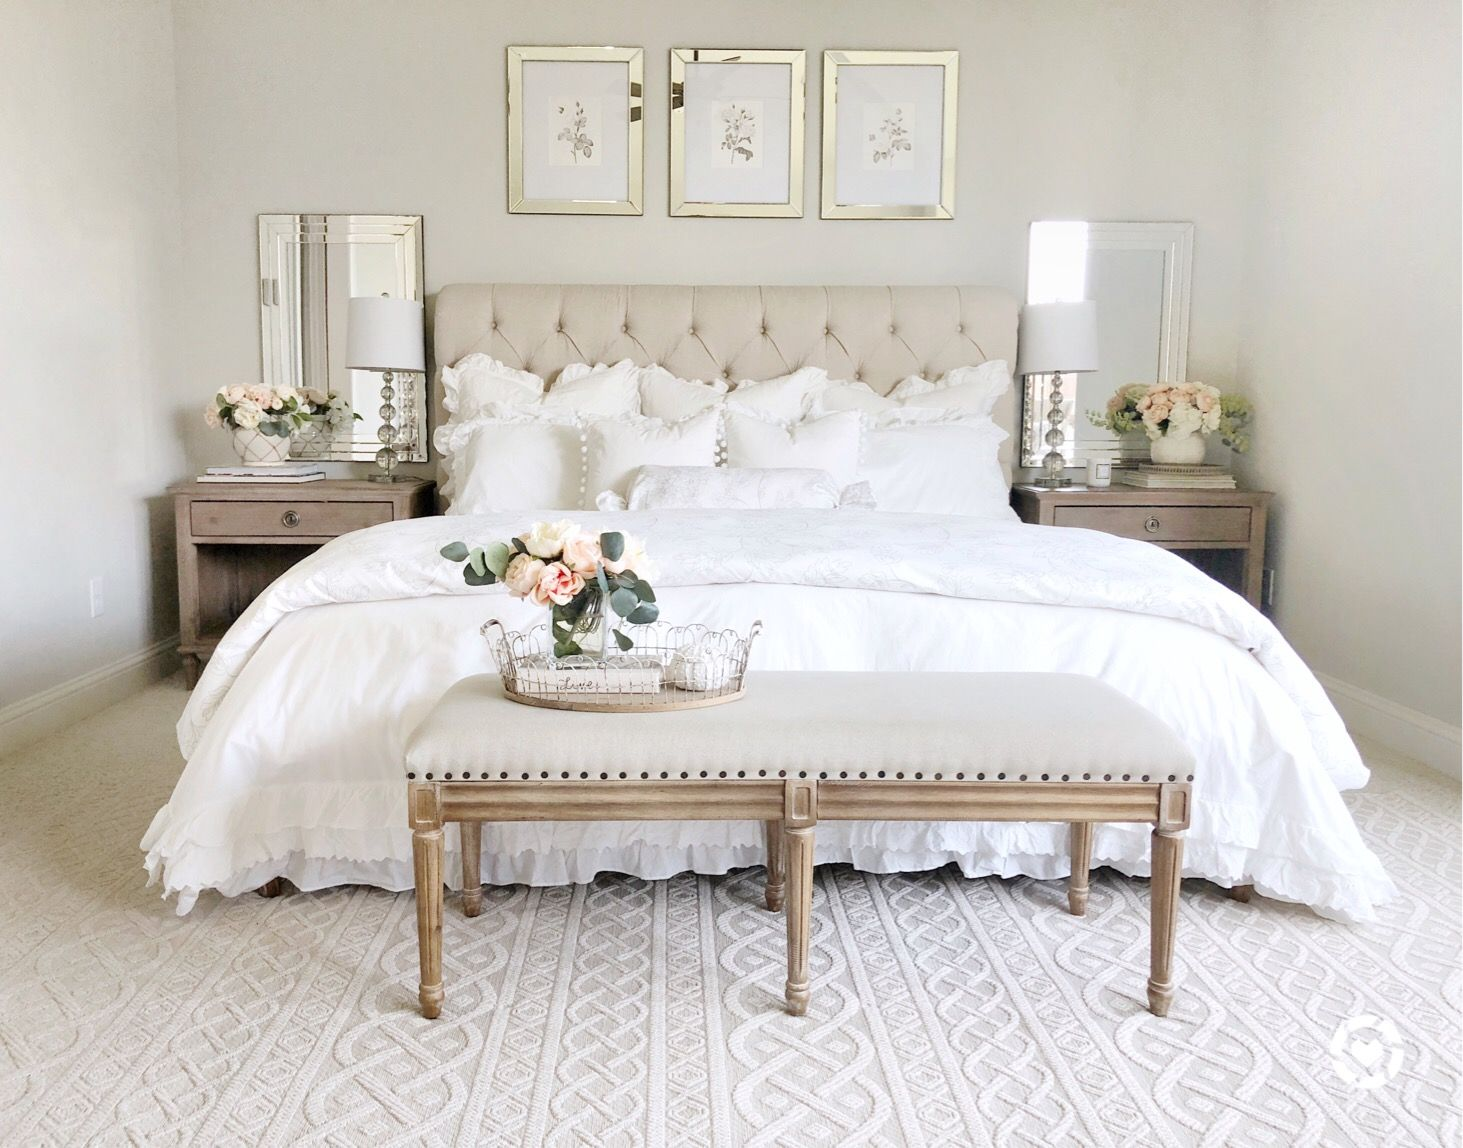 Bedroom, bedroom decor, tufted headboard, French country